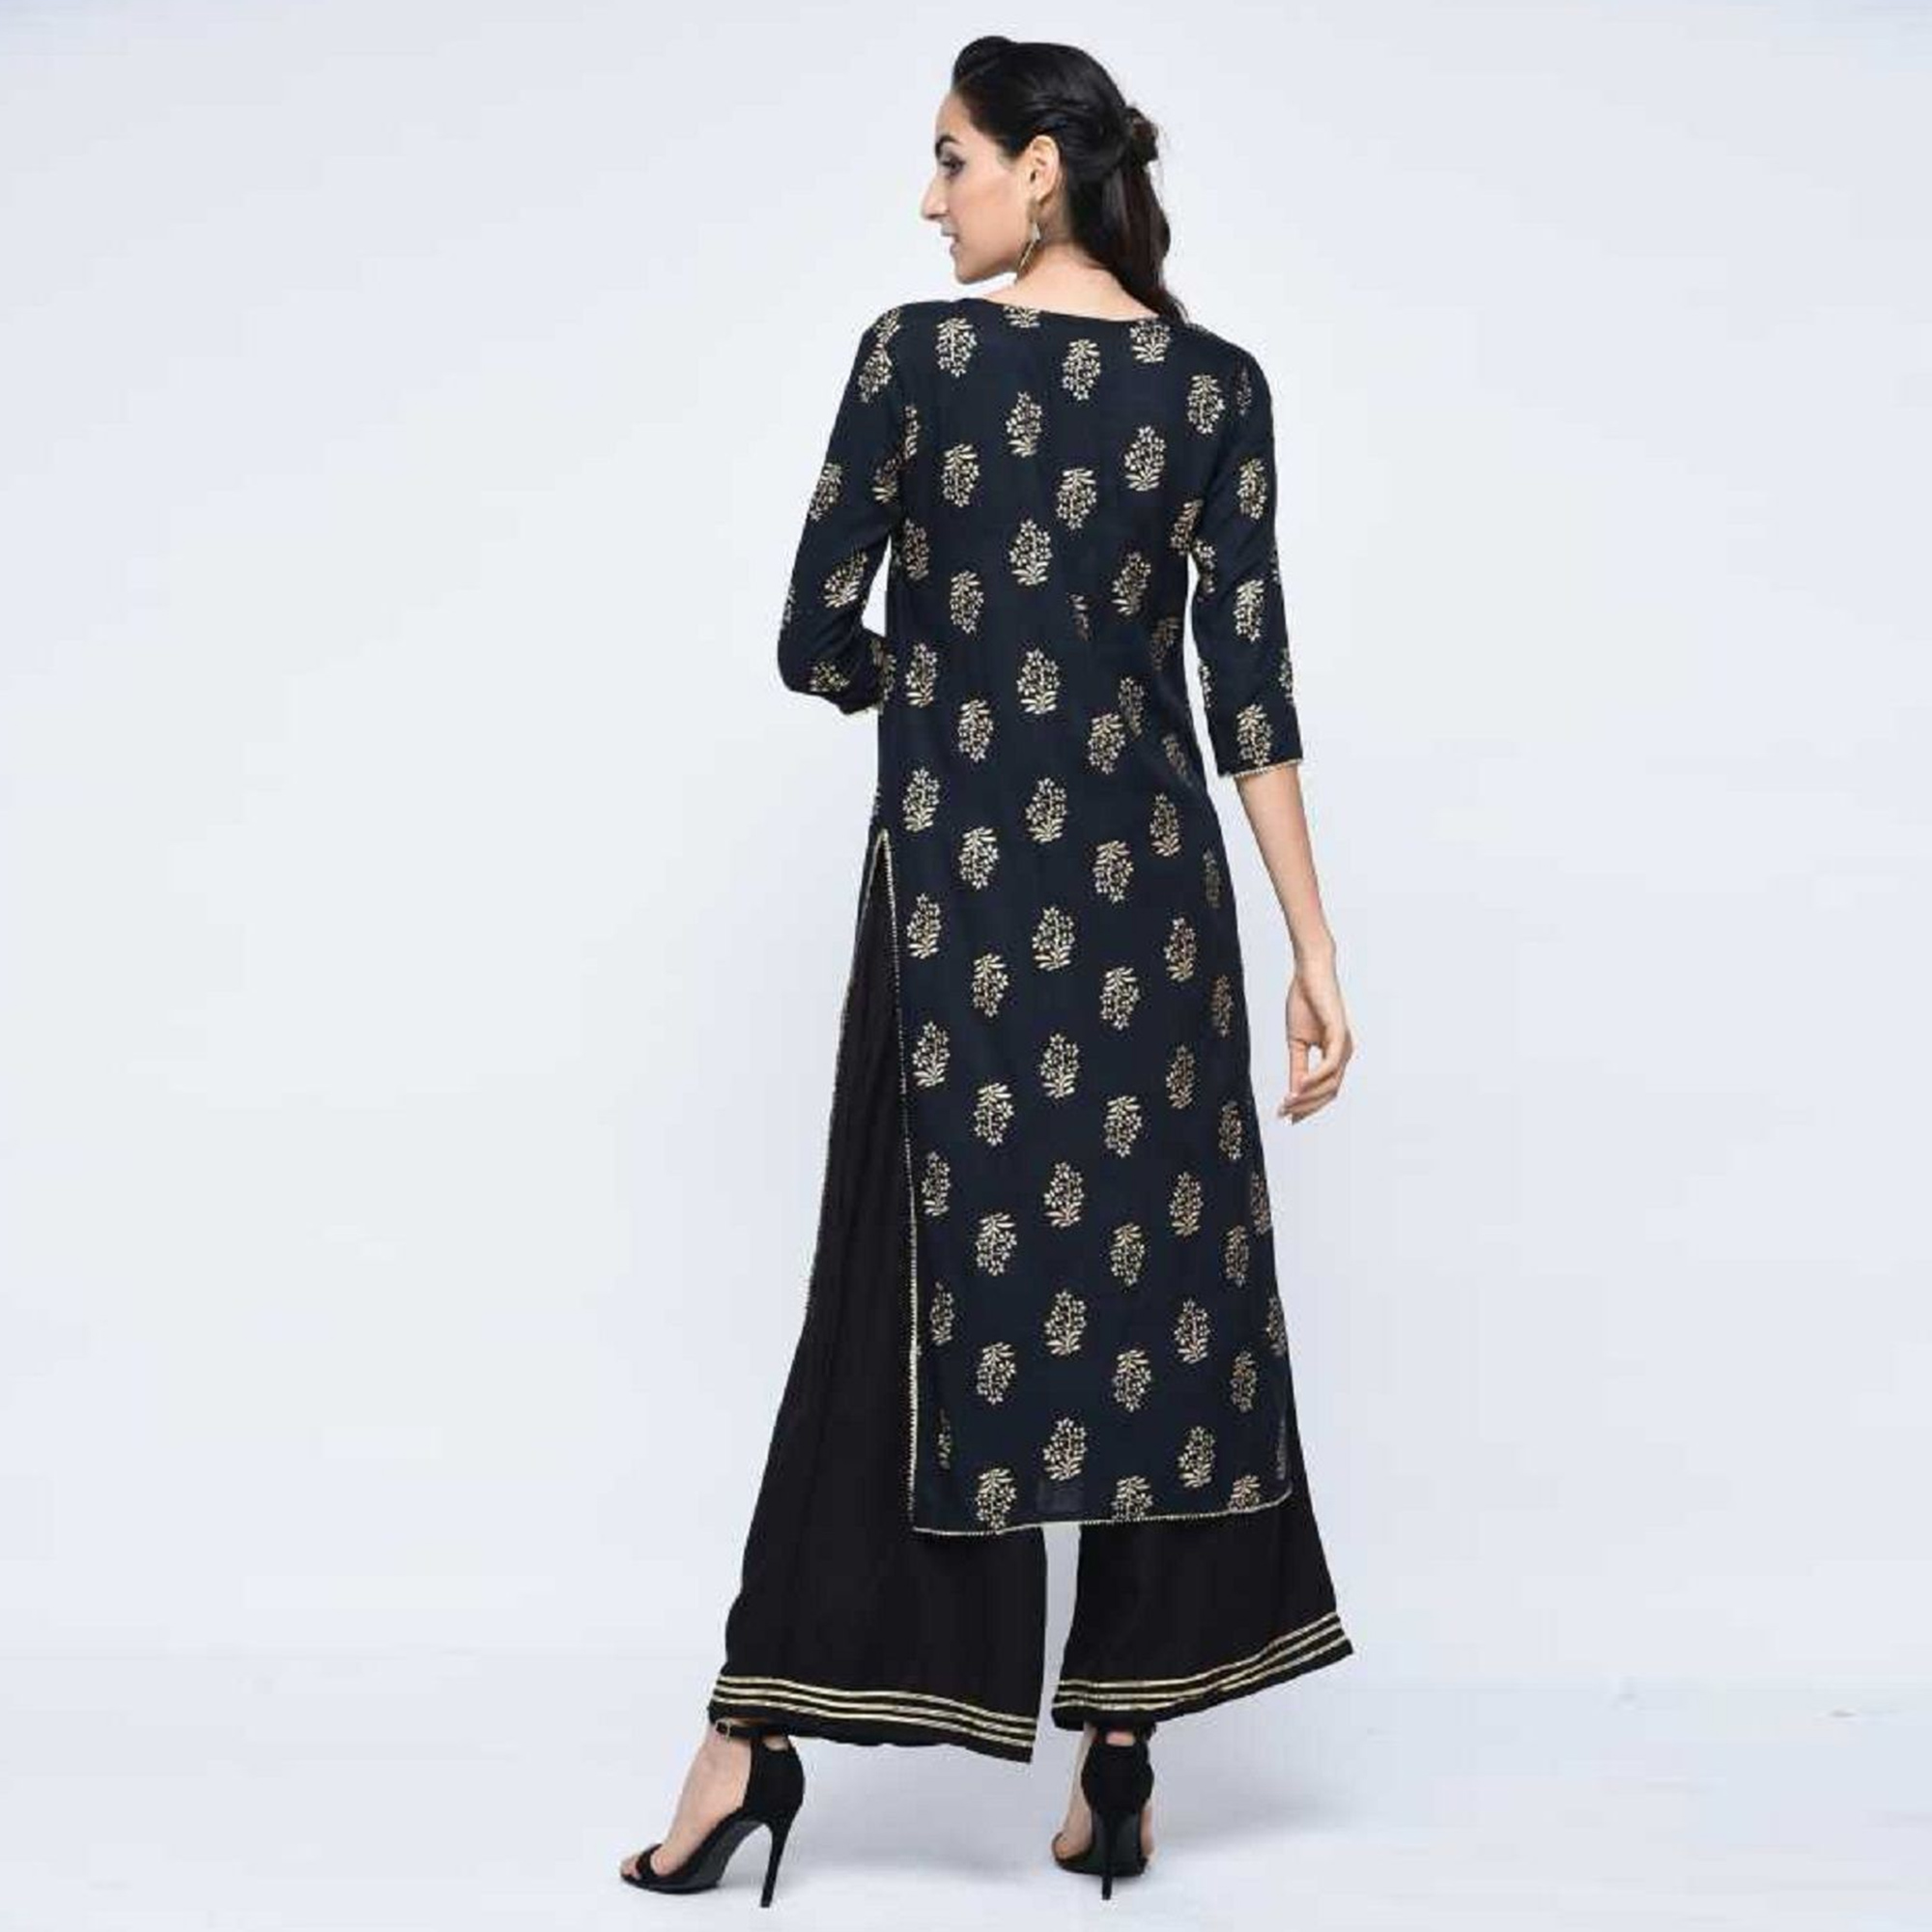 Adorable Black Colored Casual Wear Printed Straight Calf Length Rayon Kurti